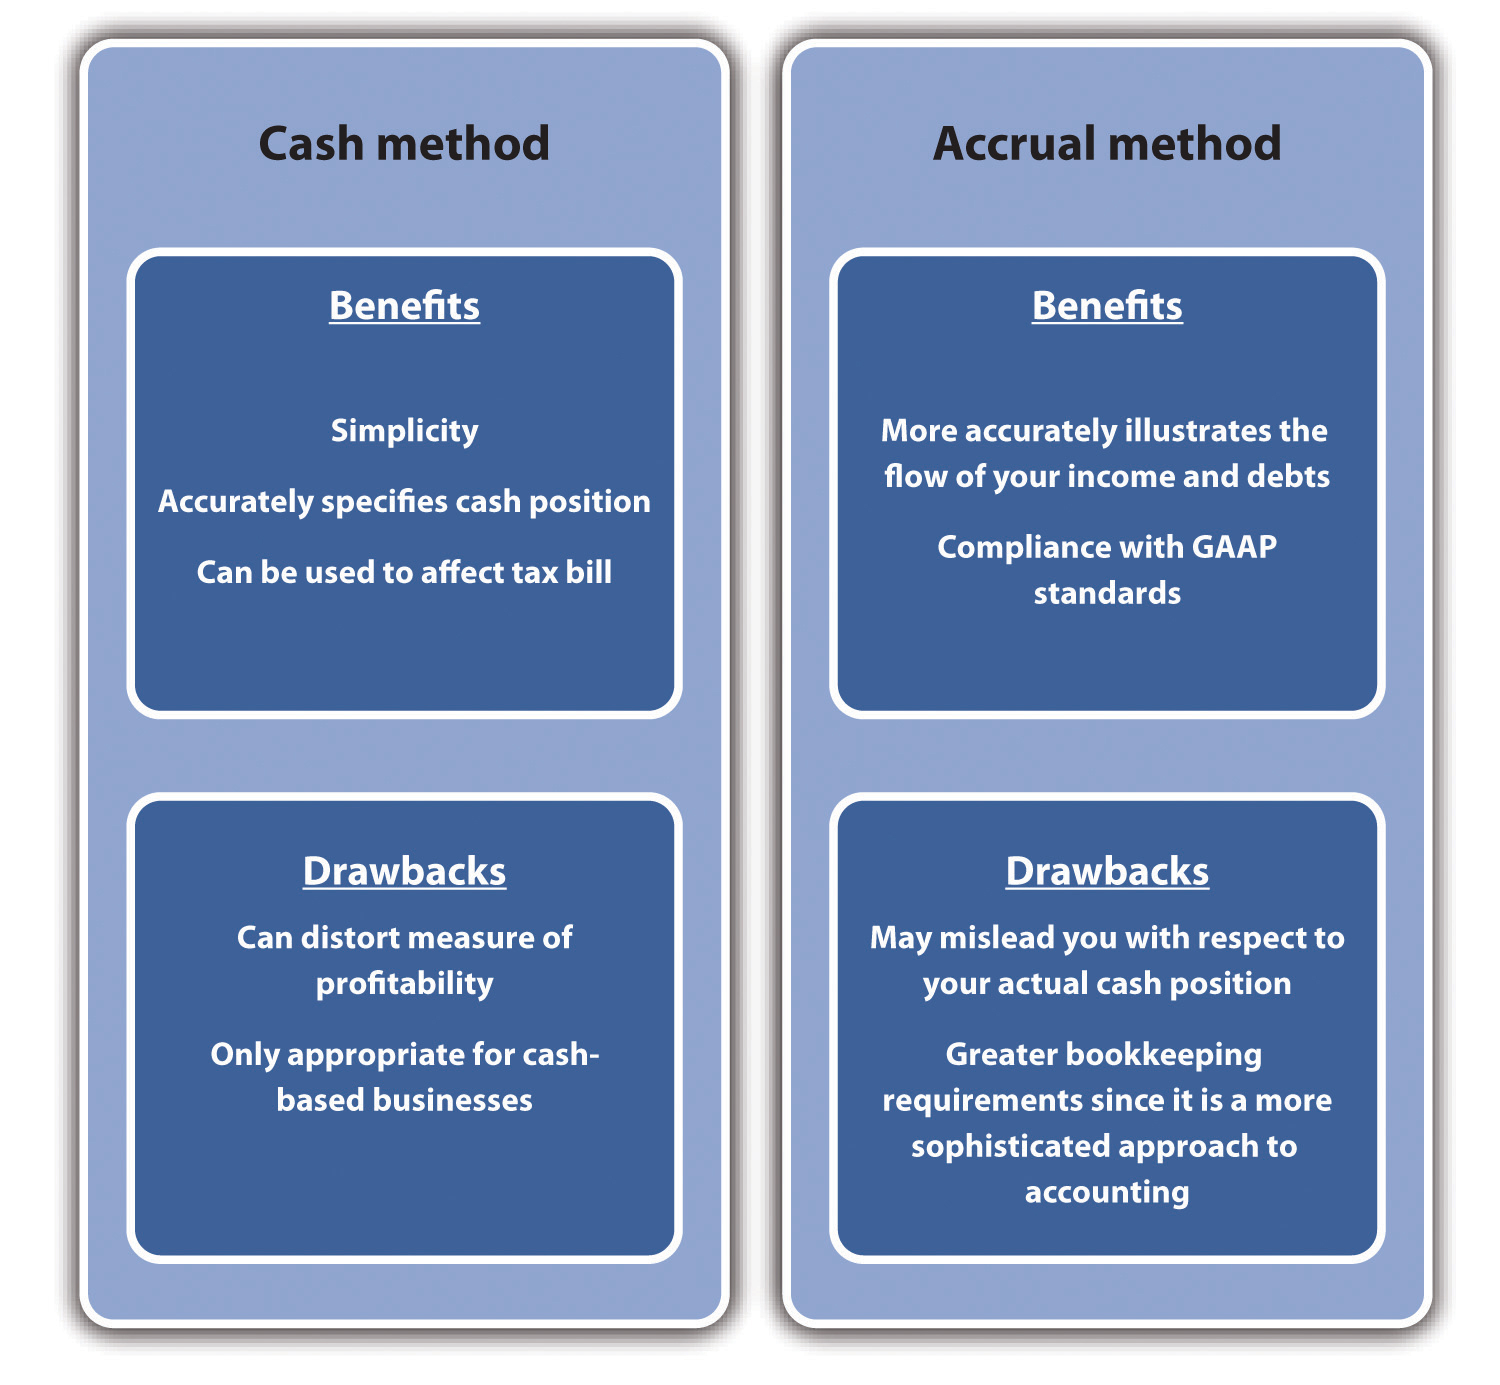 Cash vs. Accrual Accounting: What's Best for Your Small Business?